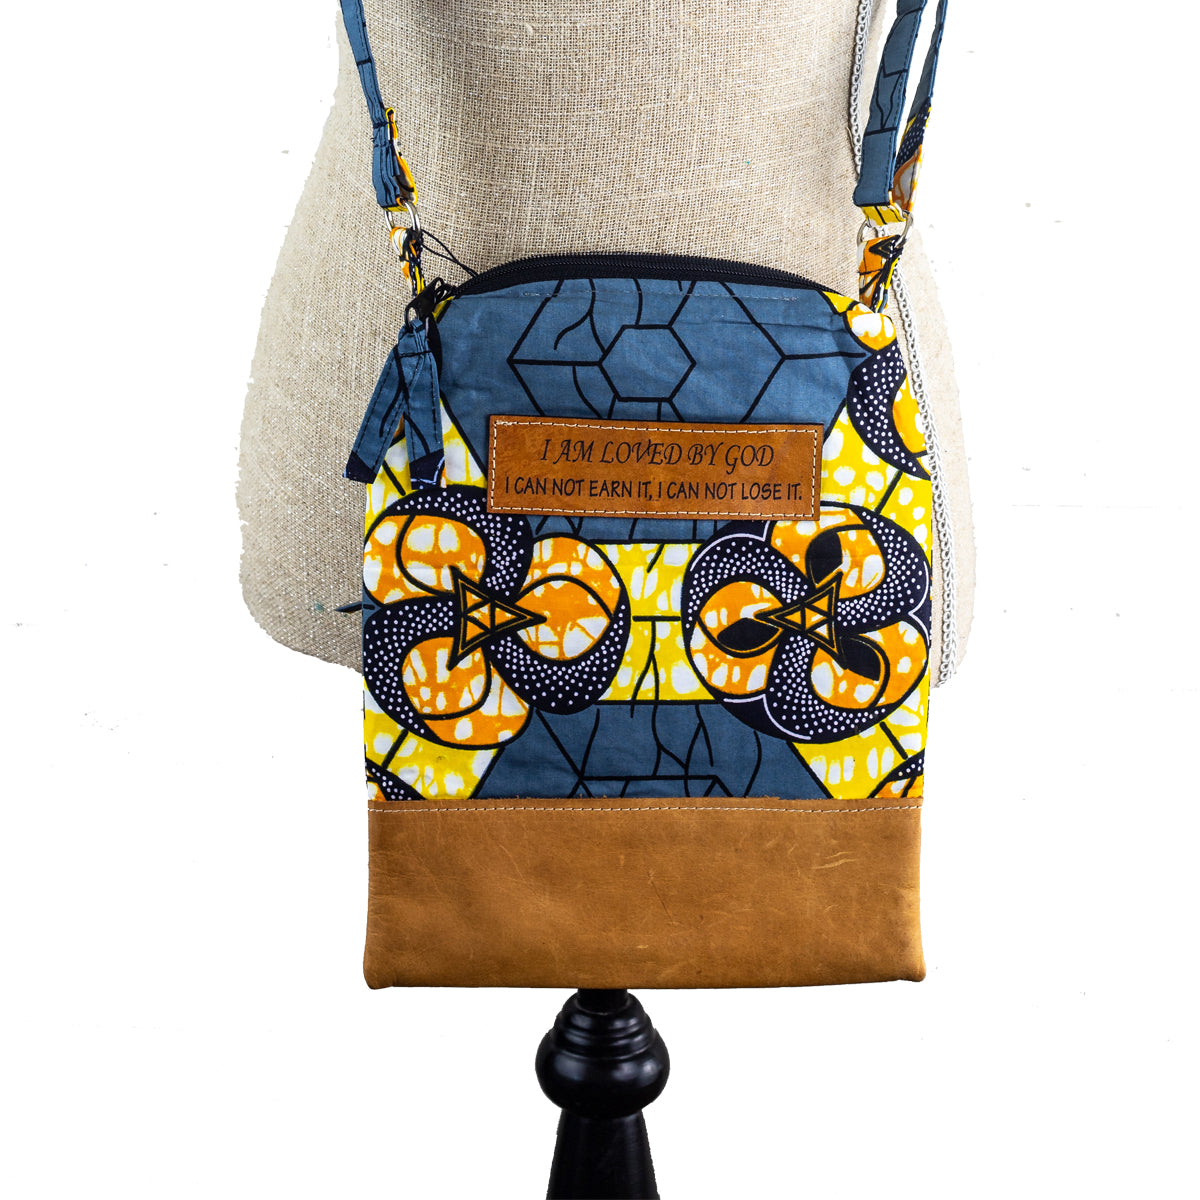 Fabric & Leather Crossbody Purse - I Am Loved